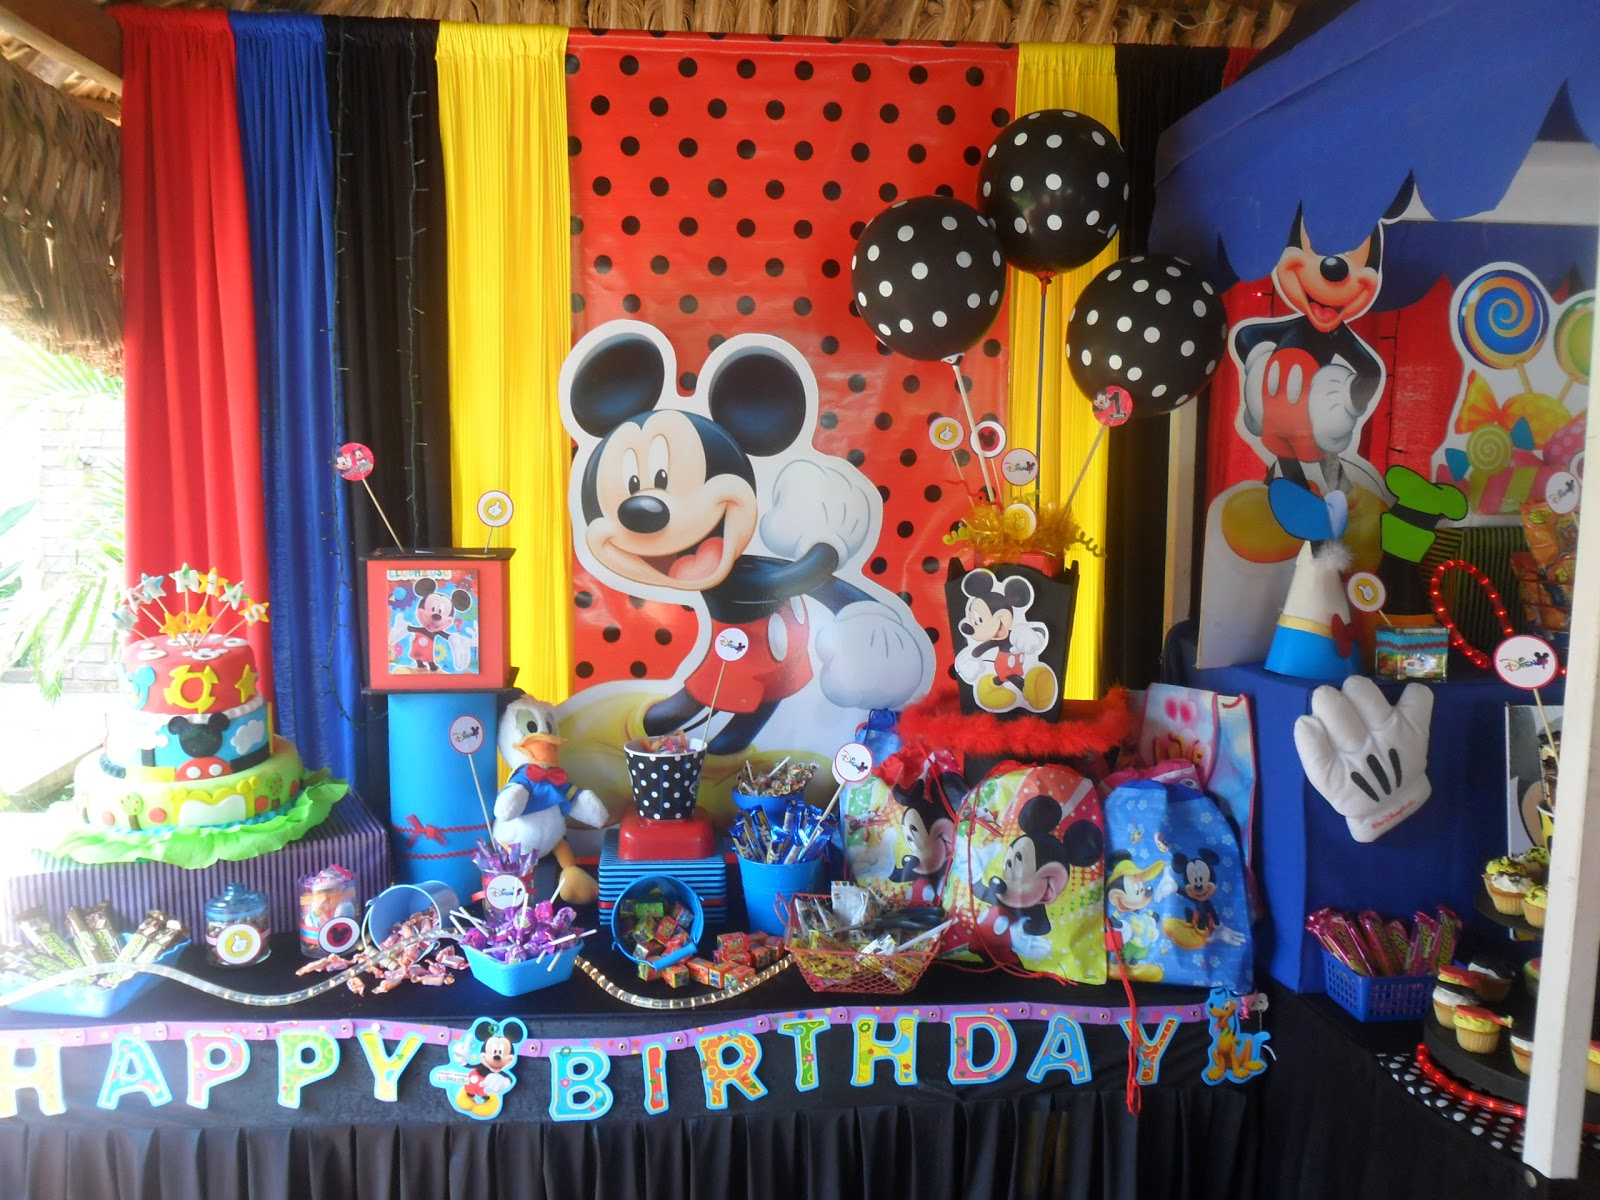 Ursula newman eventos decoracion fiesta infantil mickey for Decoracion la casa de mickey mouse